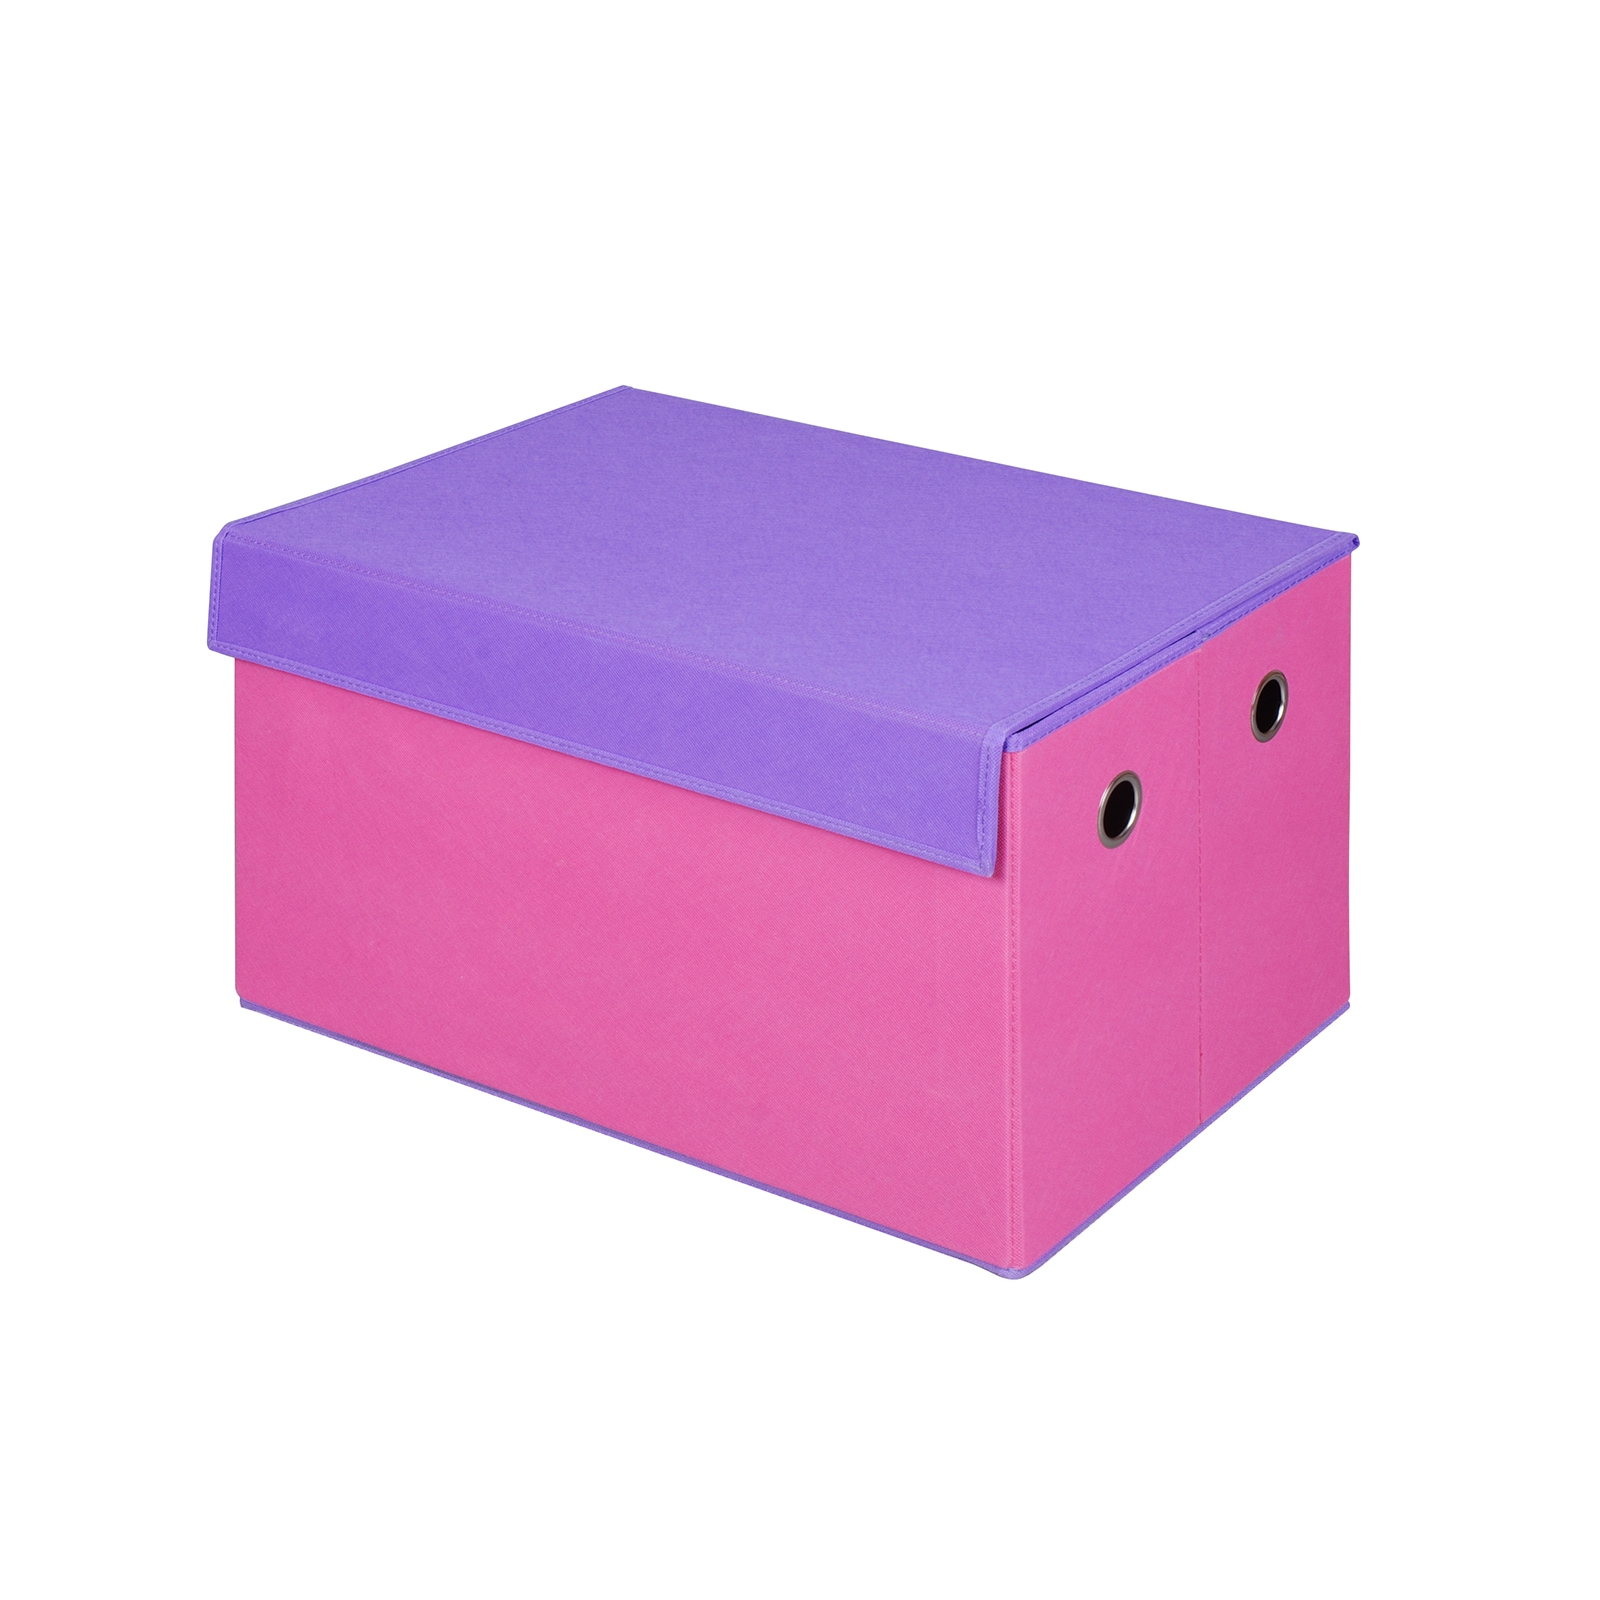 Superieur Shop Pink And Purple Collapsible Storage Trunk   Free Shipping On Orders  Over $45   Overstock.com   13028339